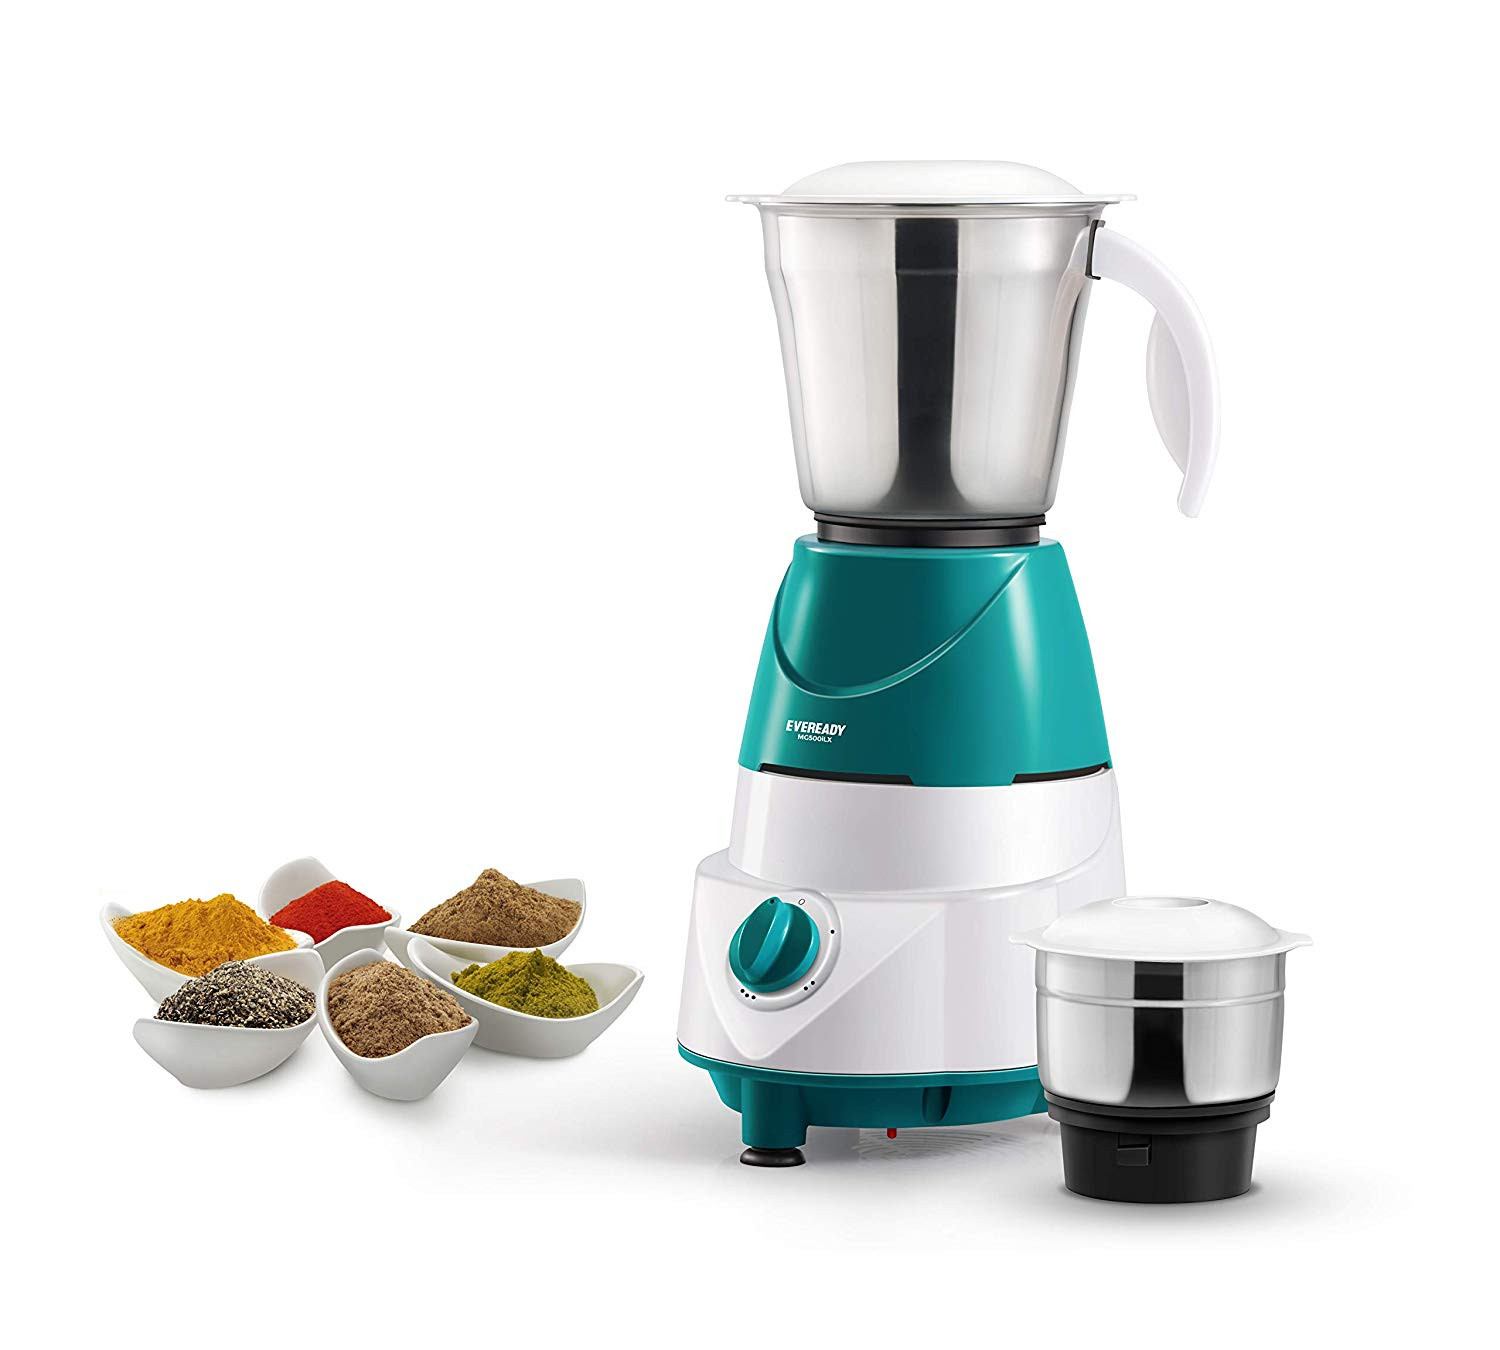 Eveready MG500i LX 500-Watt Mixer Grinder with 2 Jars